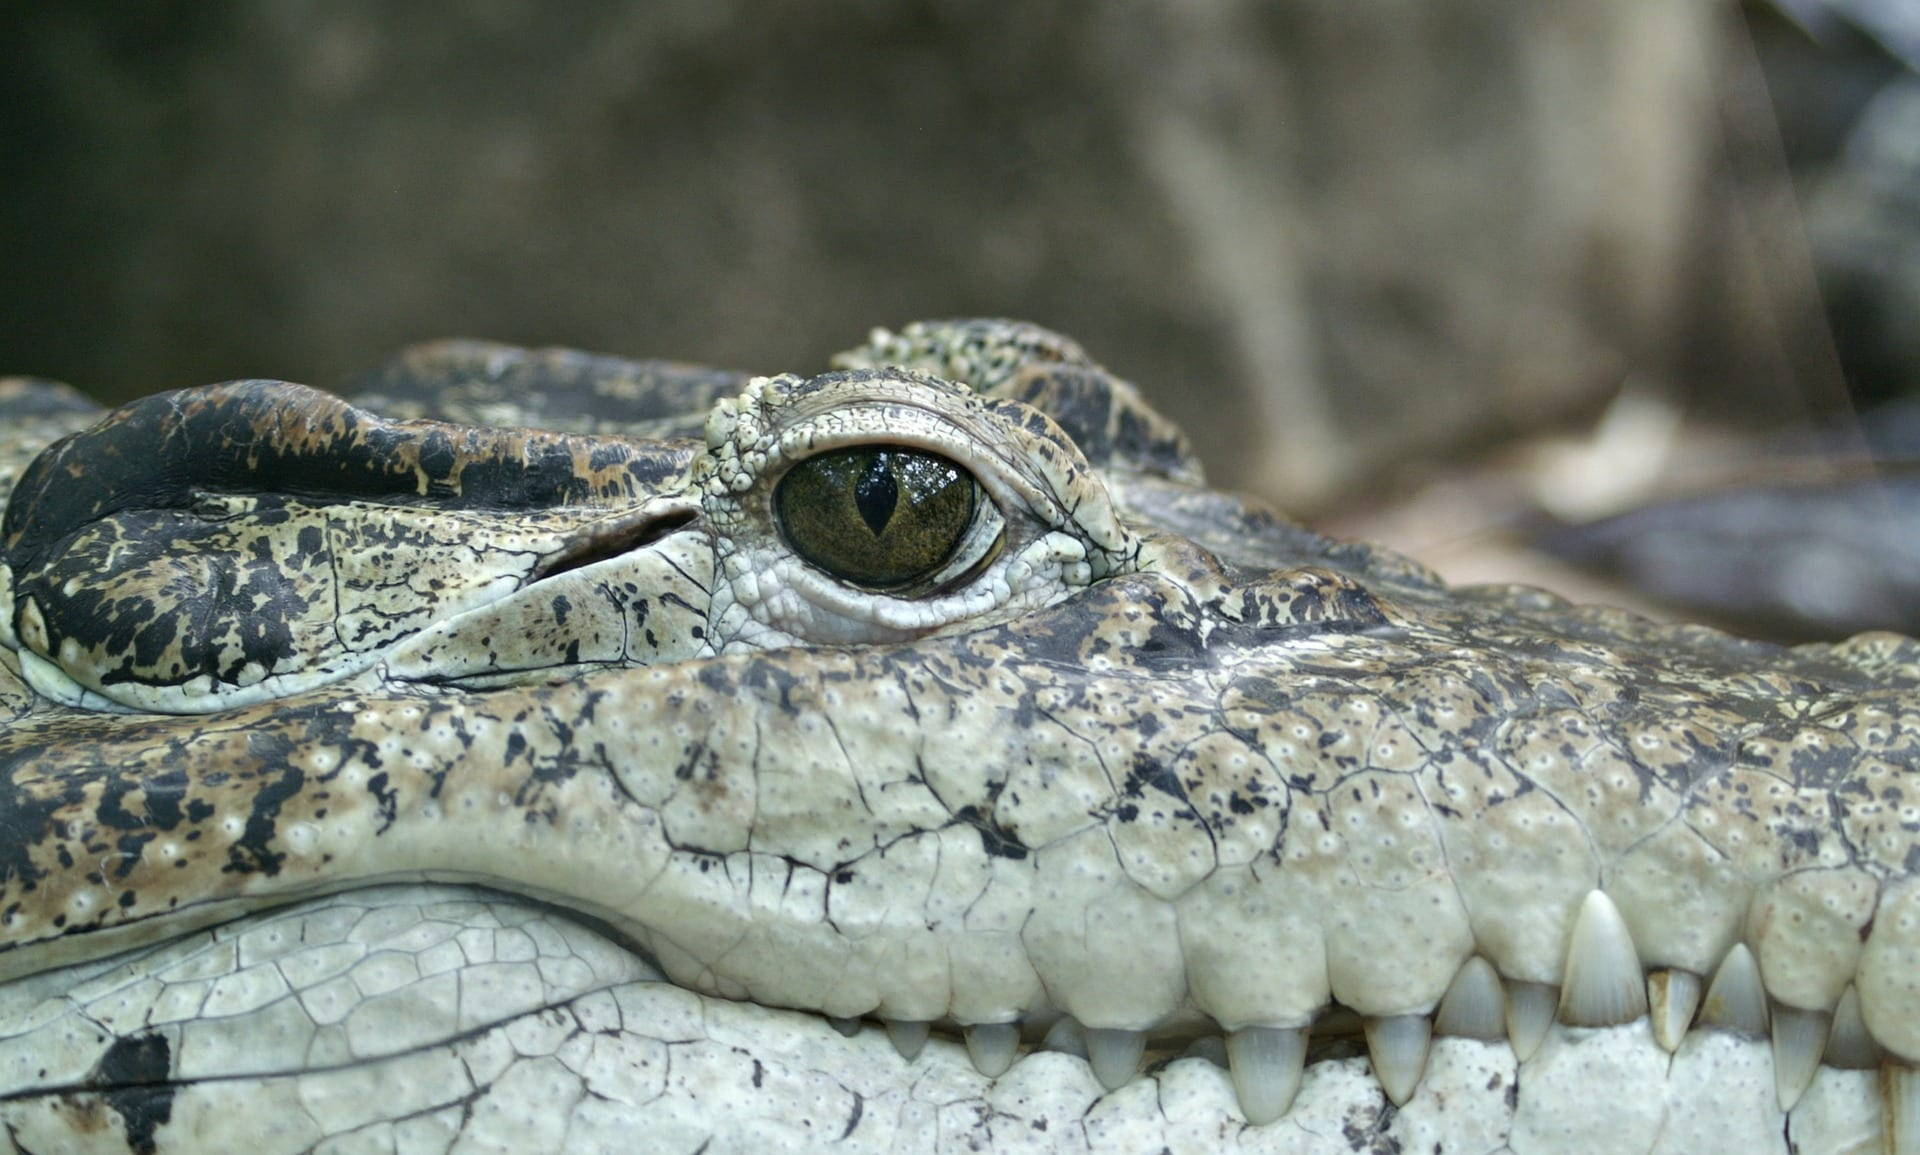 Alligator peering at the viewer